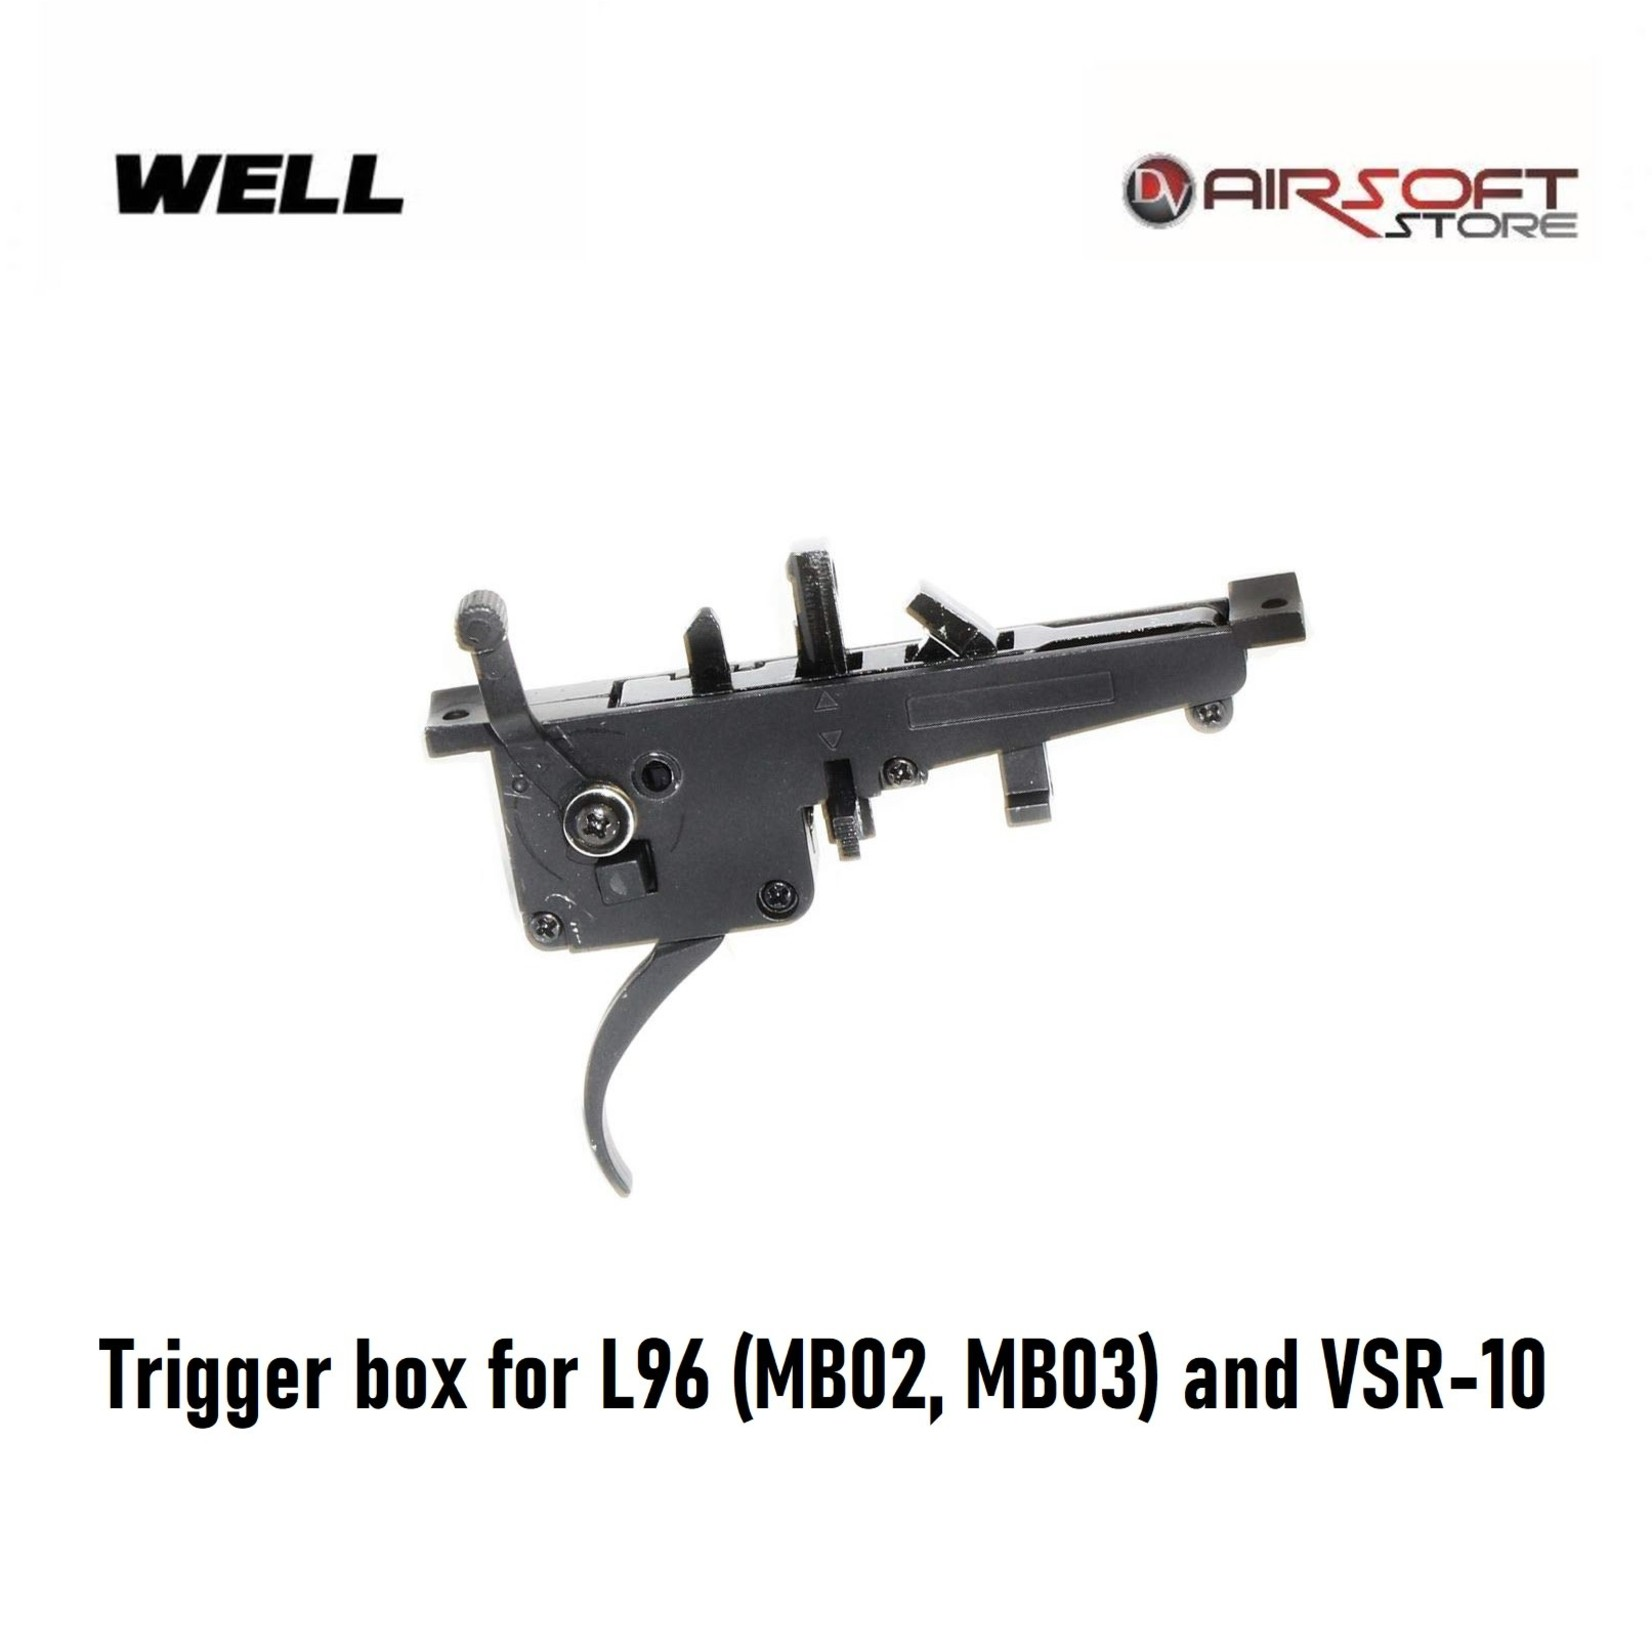 Well Trigger box for L96 (MB02, MB03) and VSR-10